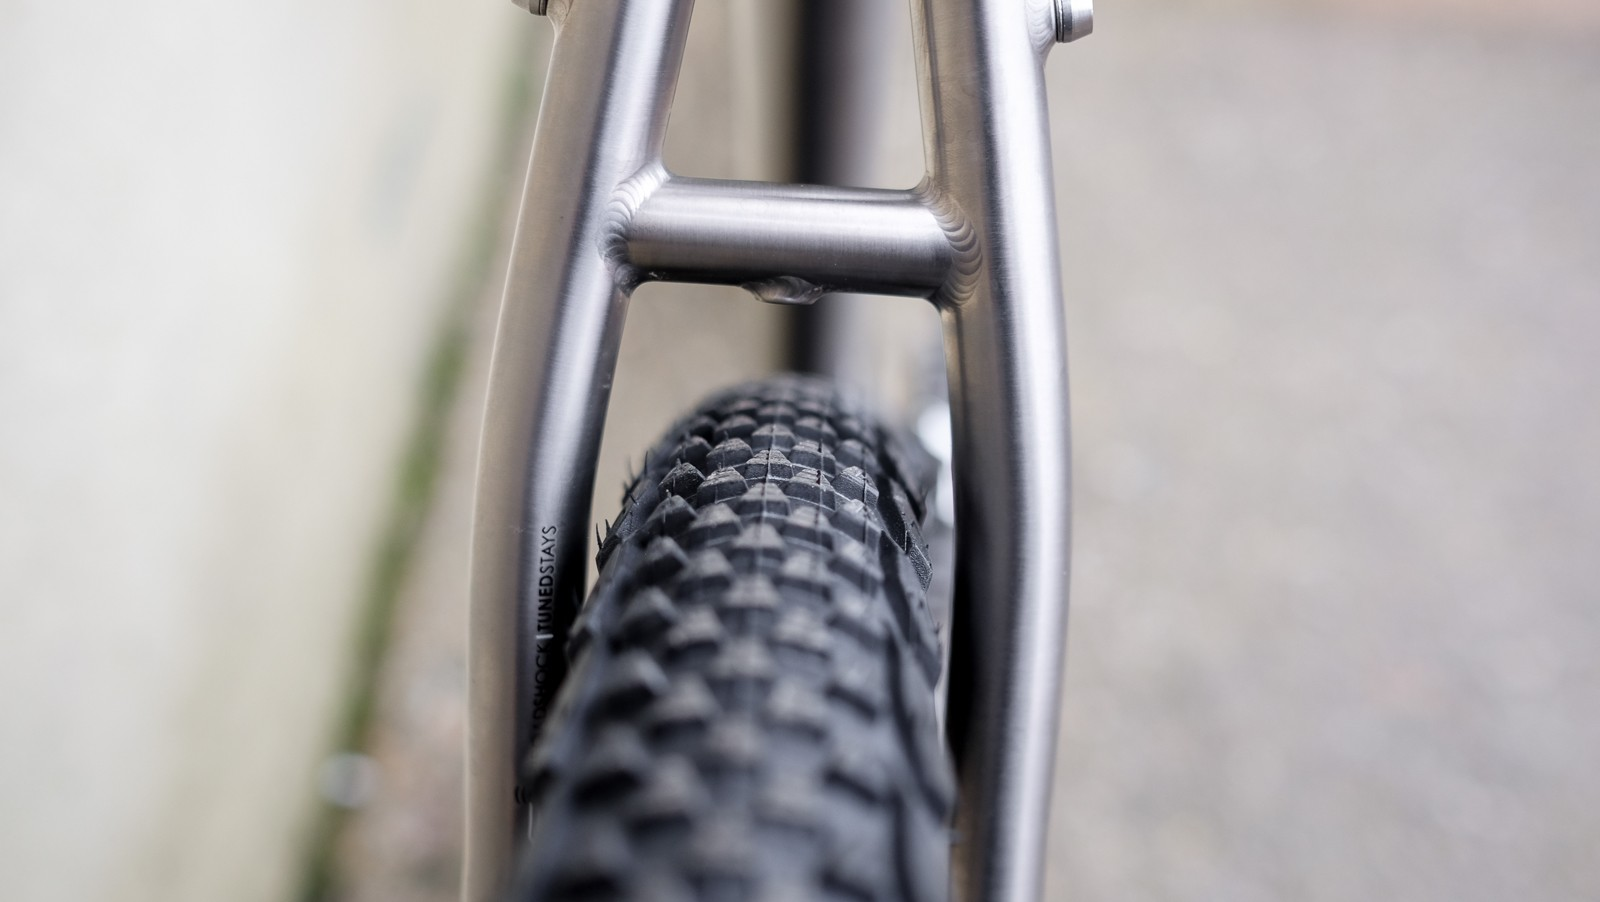 """Clearances were quite tight with a 2.2"""" tyre, but should be OK for all but the muddiest rides"""